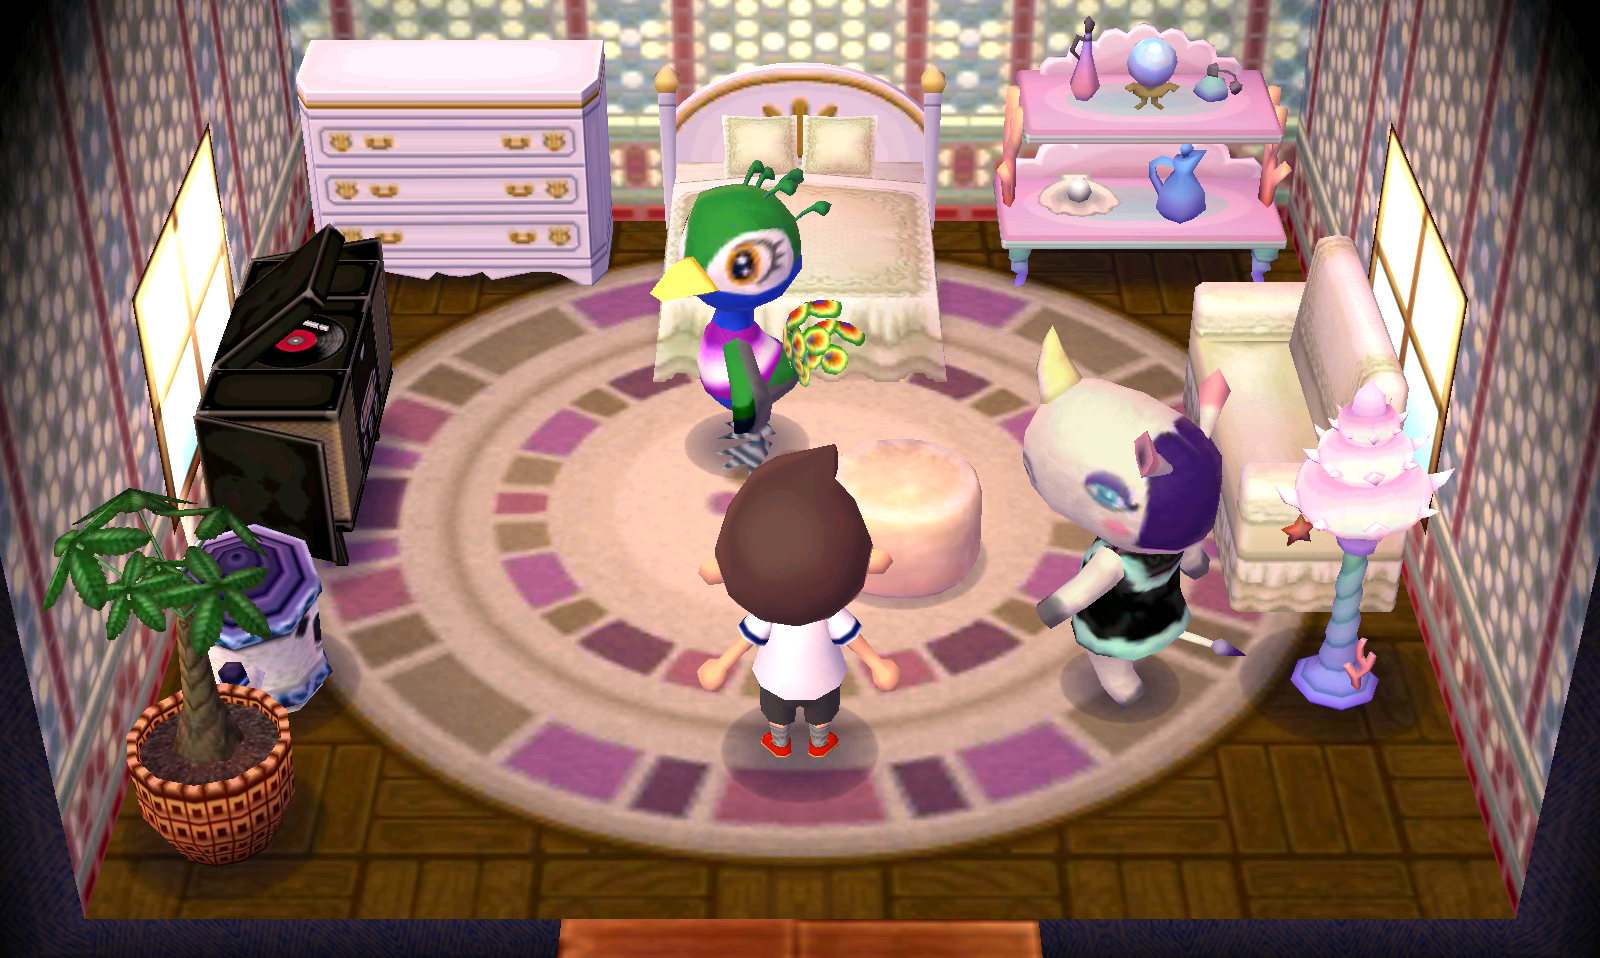 Interior of Rhonda's house in Animal Crossing: New Leaf